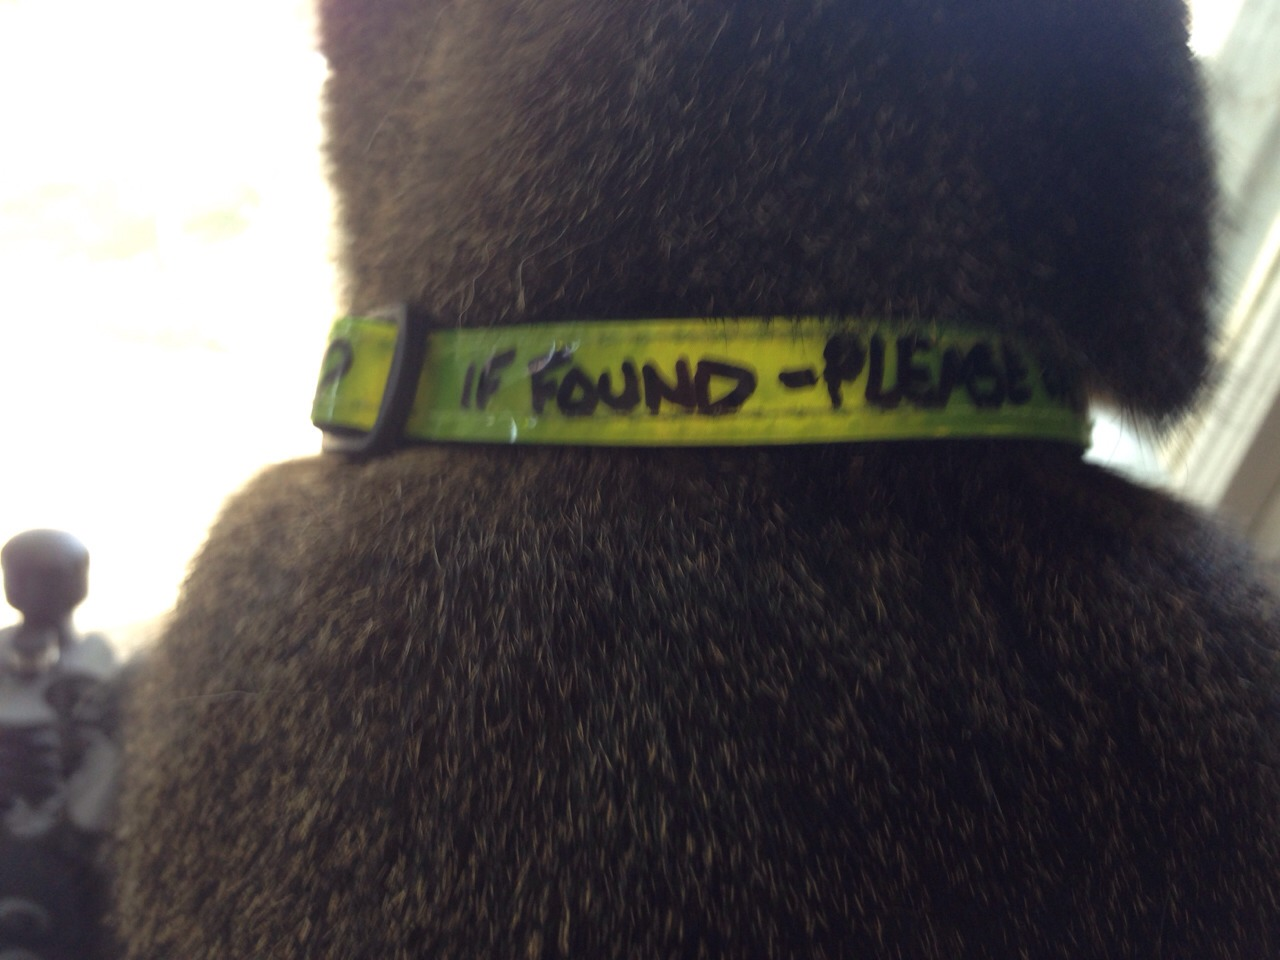 Spartacus sports his new reflective/ IF FOUND CALL.... collar!